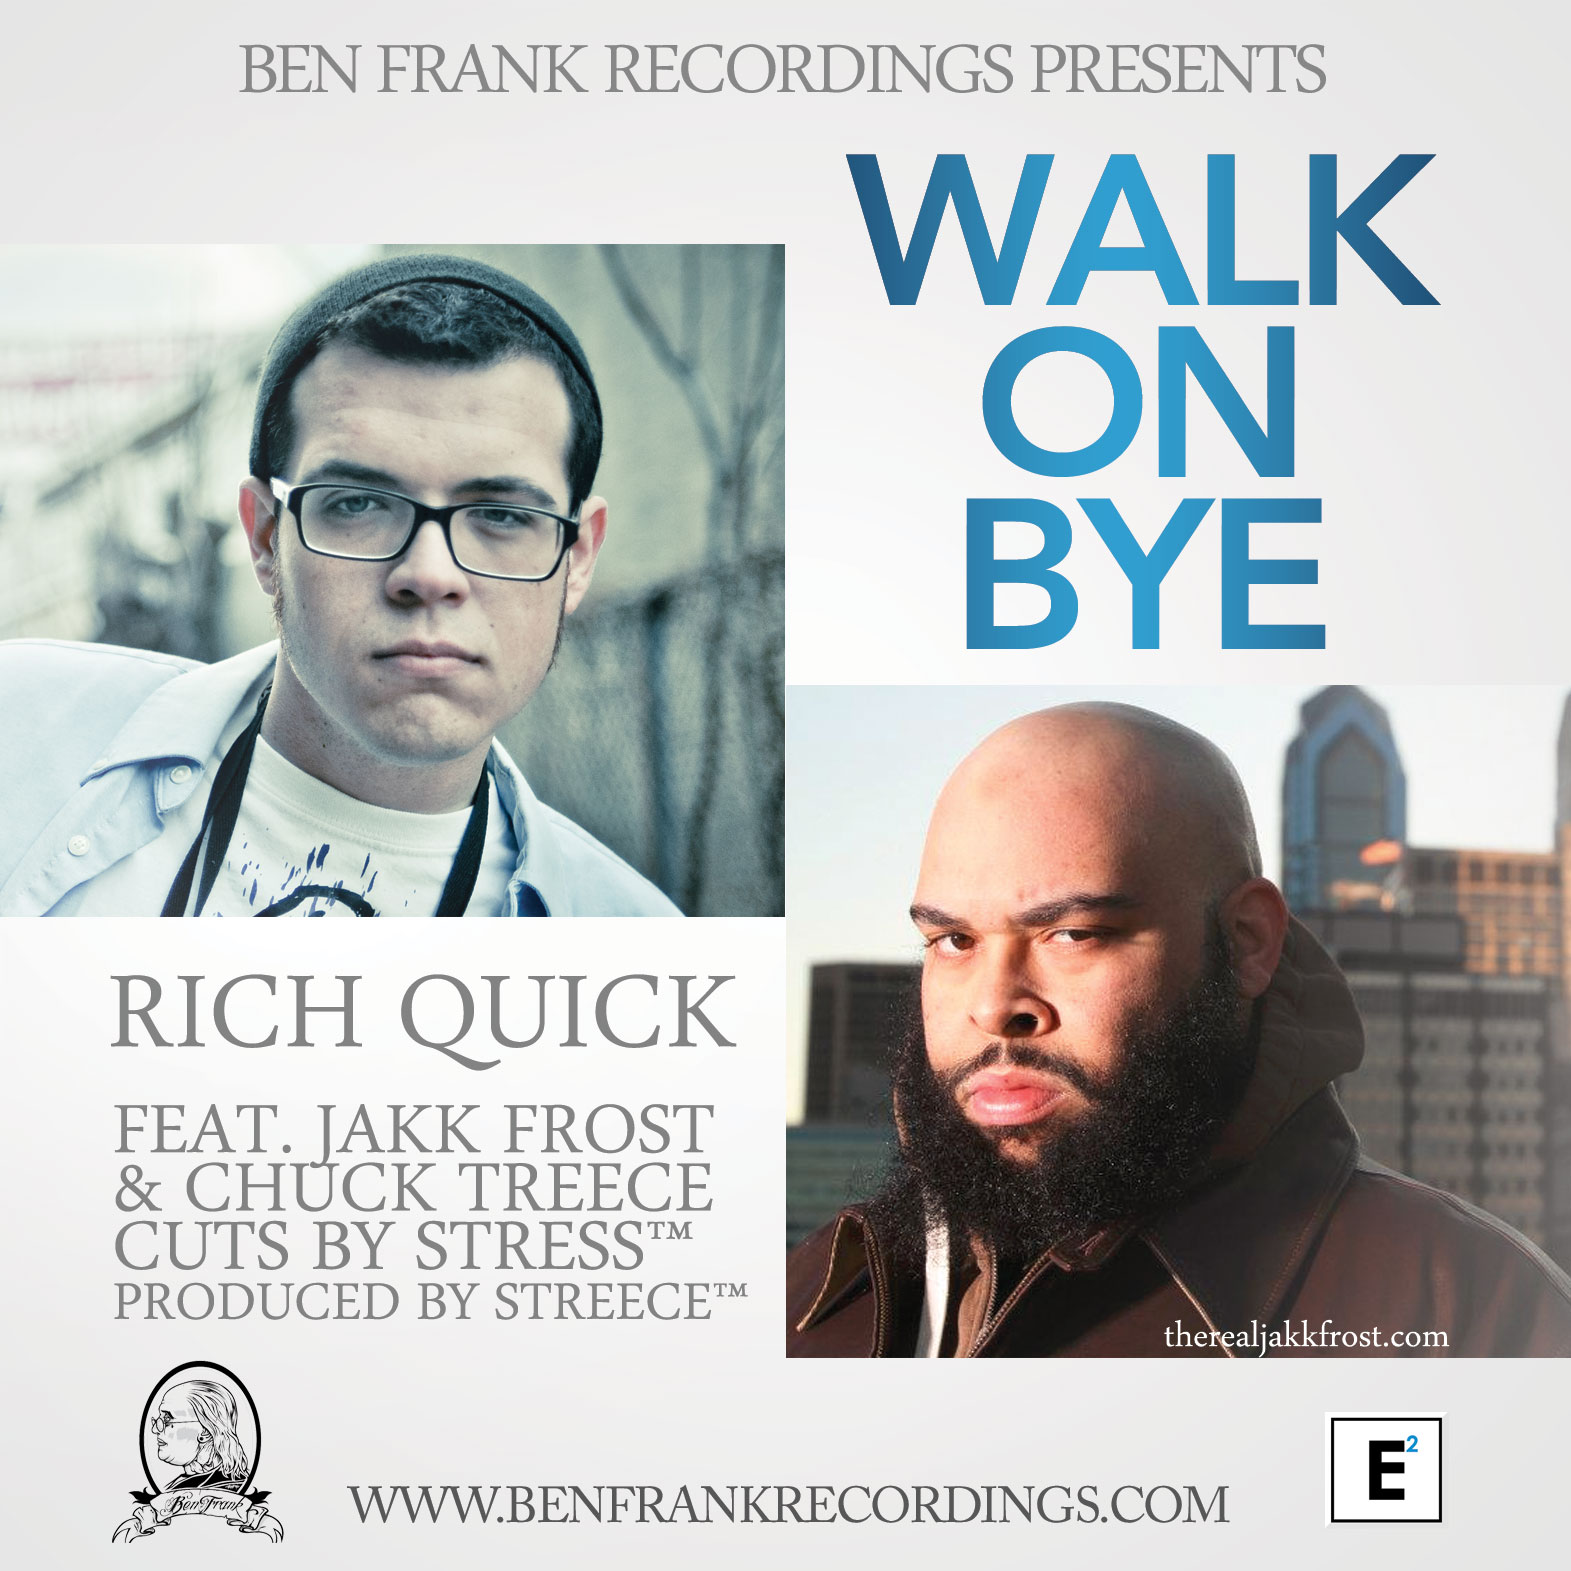 Rich Quick - Walk On Bye Ft. Jakk Frost & Chuck Treece (Prod by Streece)